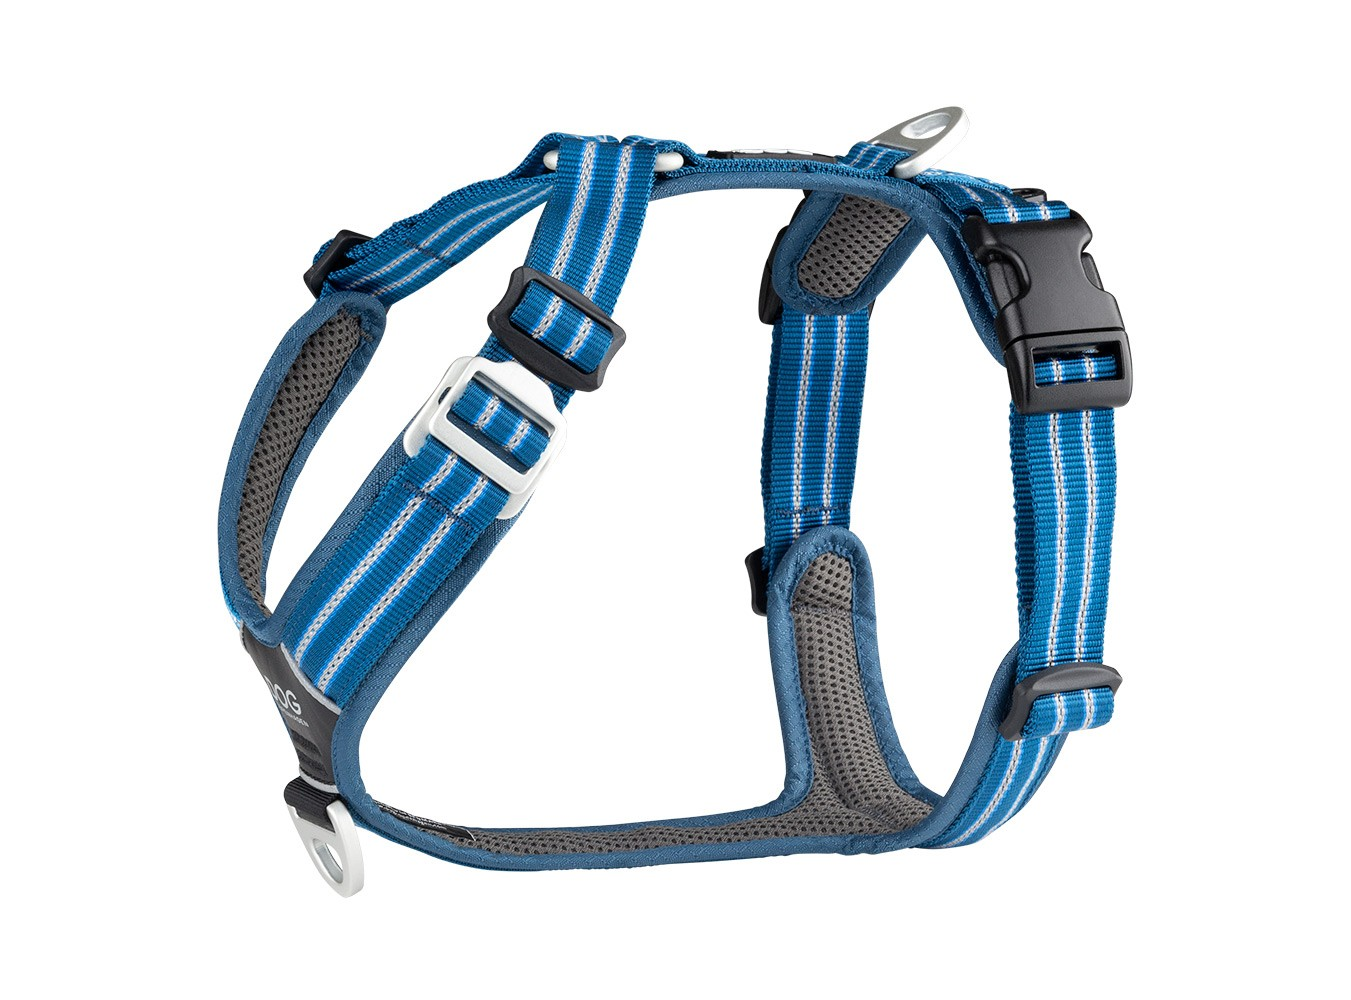 New Harness Range Added!